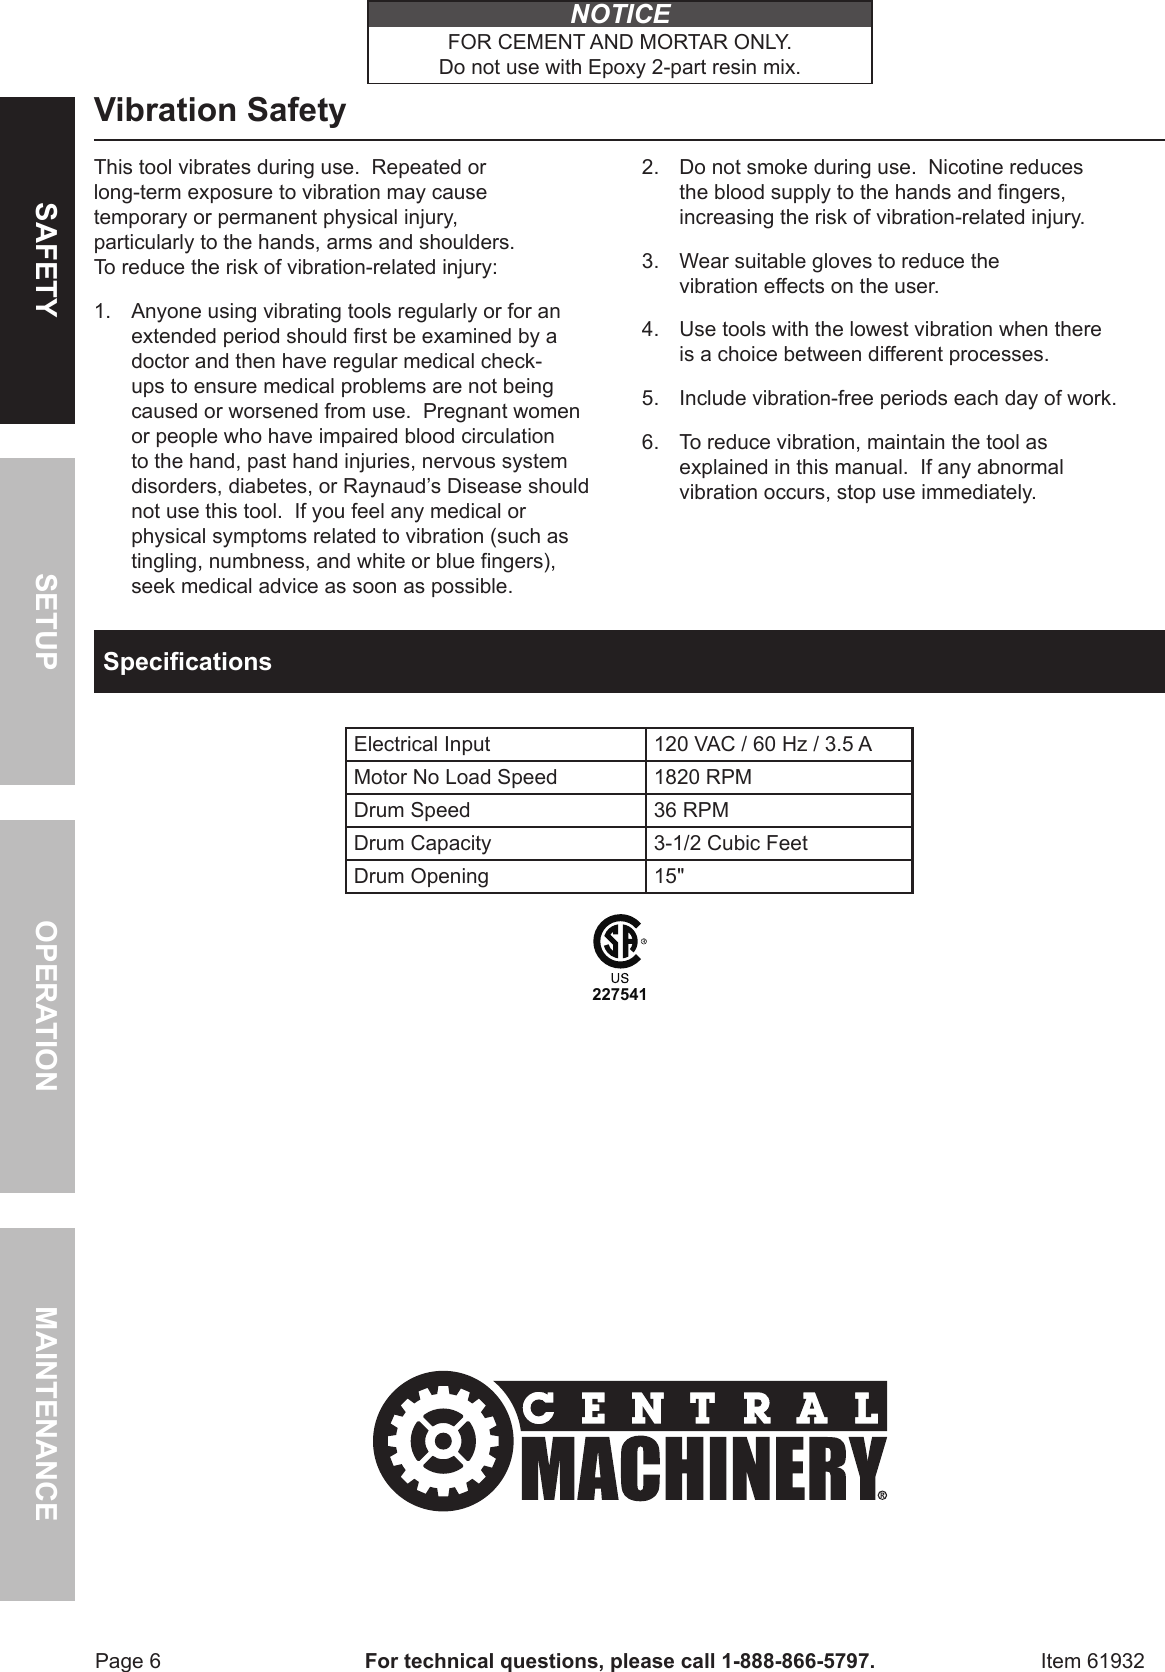 Harbor Freight 3 1 2 Cubic Ft Cement Mixer Product Manual 723128